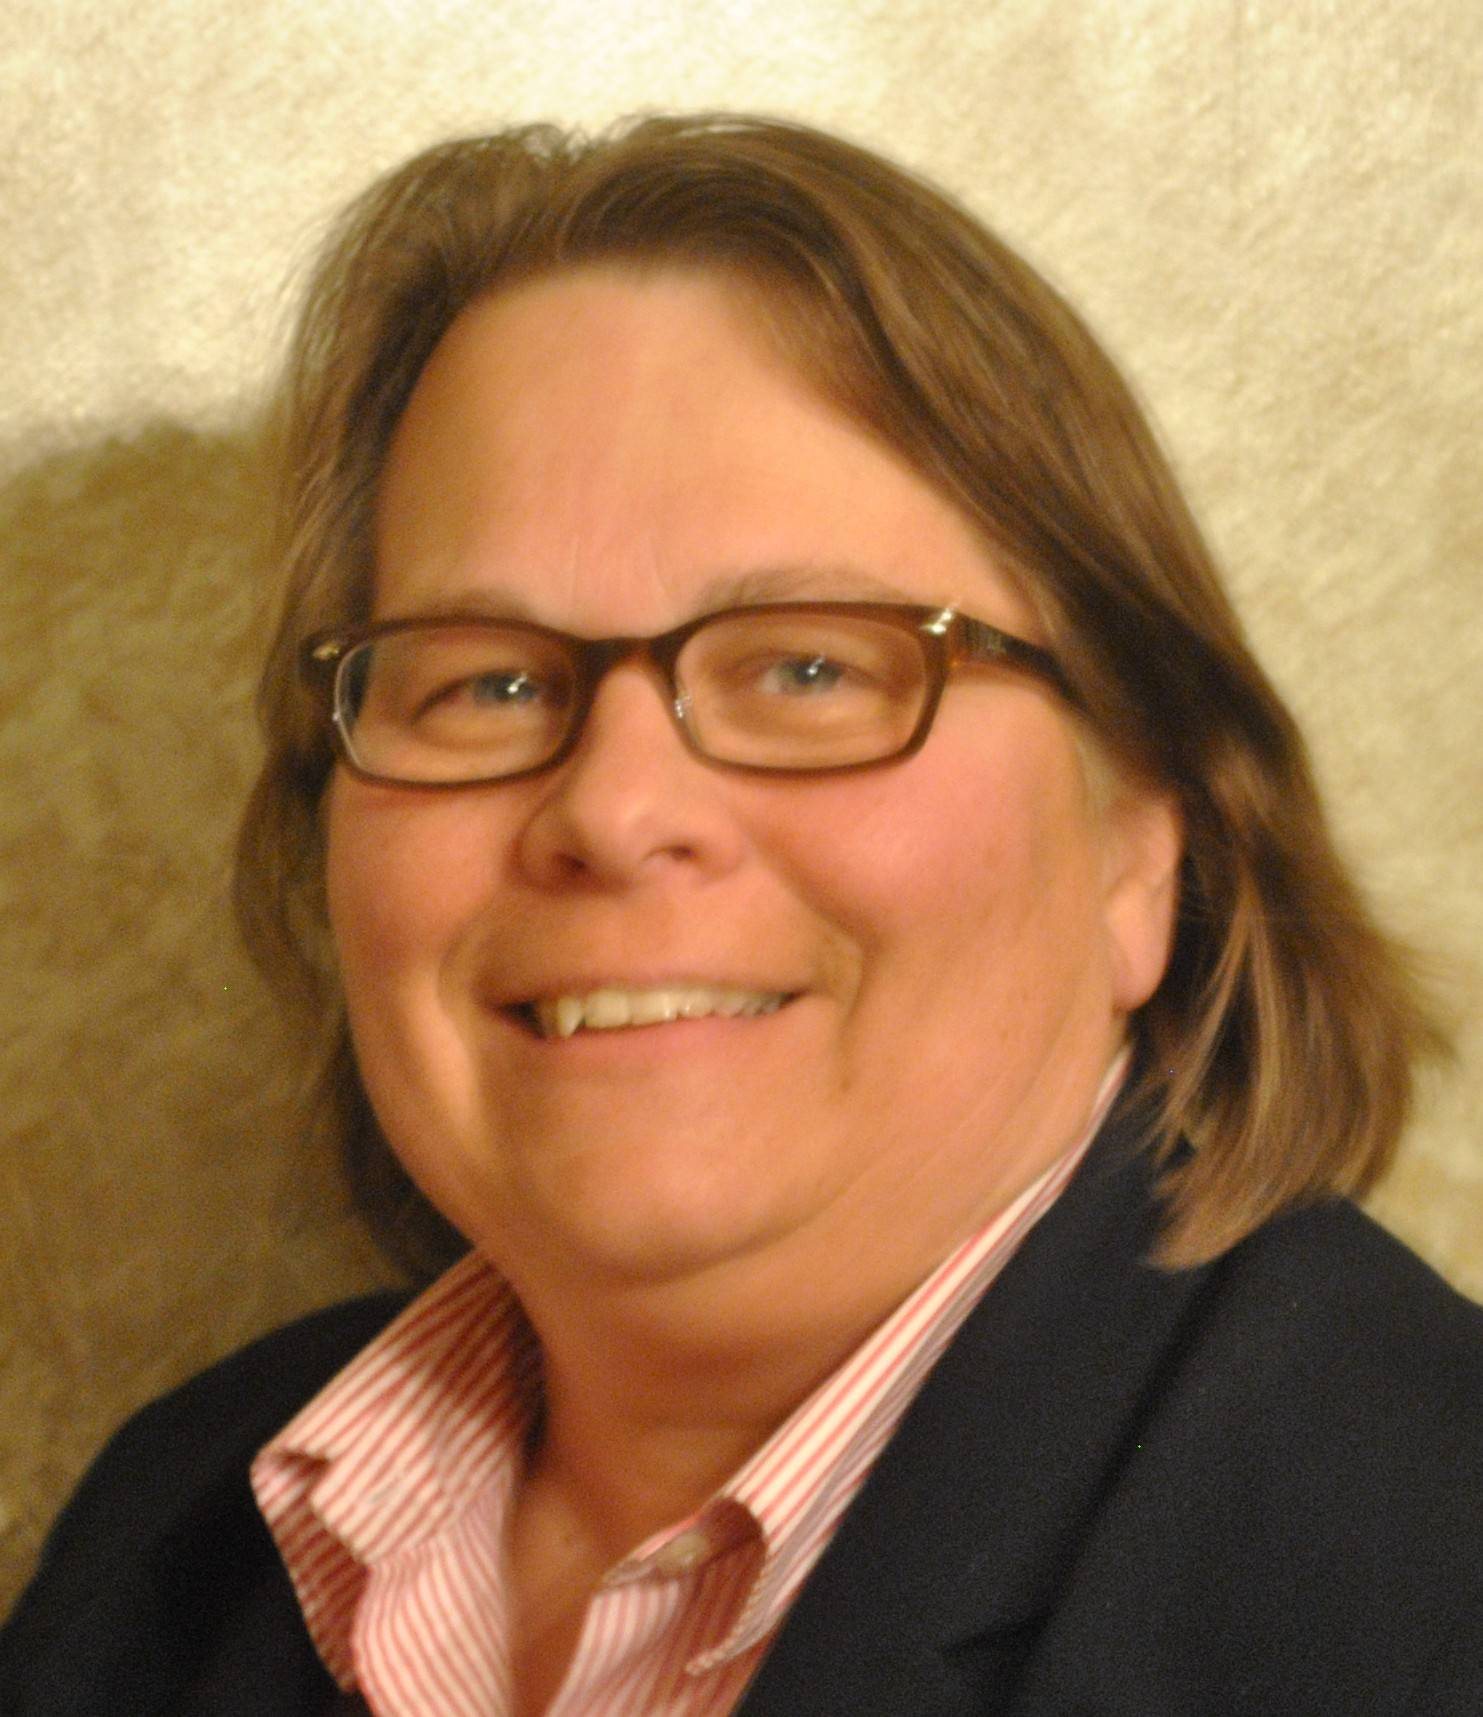 Wendy Schilling Candidate Profile